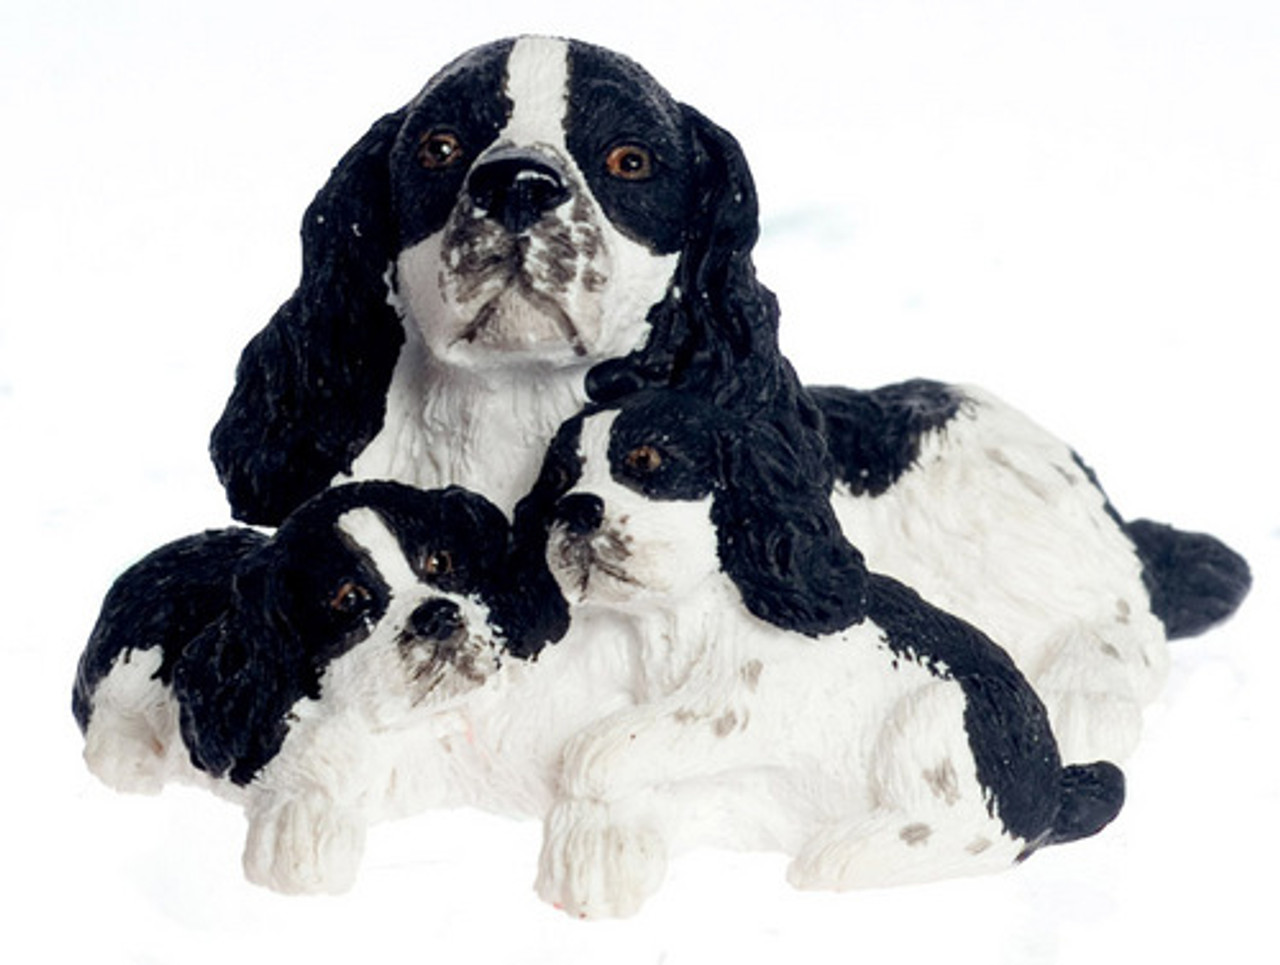 Dollhouse City - Dollhouse Miniatures English Springer Spaniel with Puppy - Black